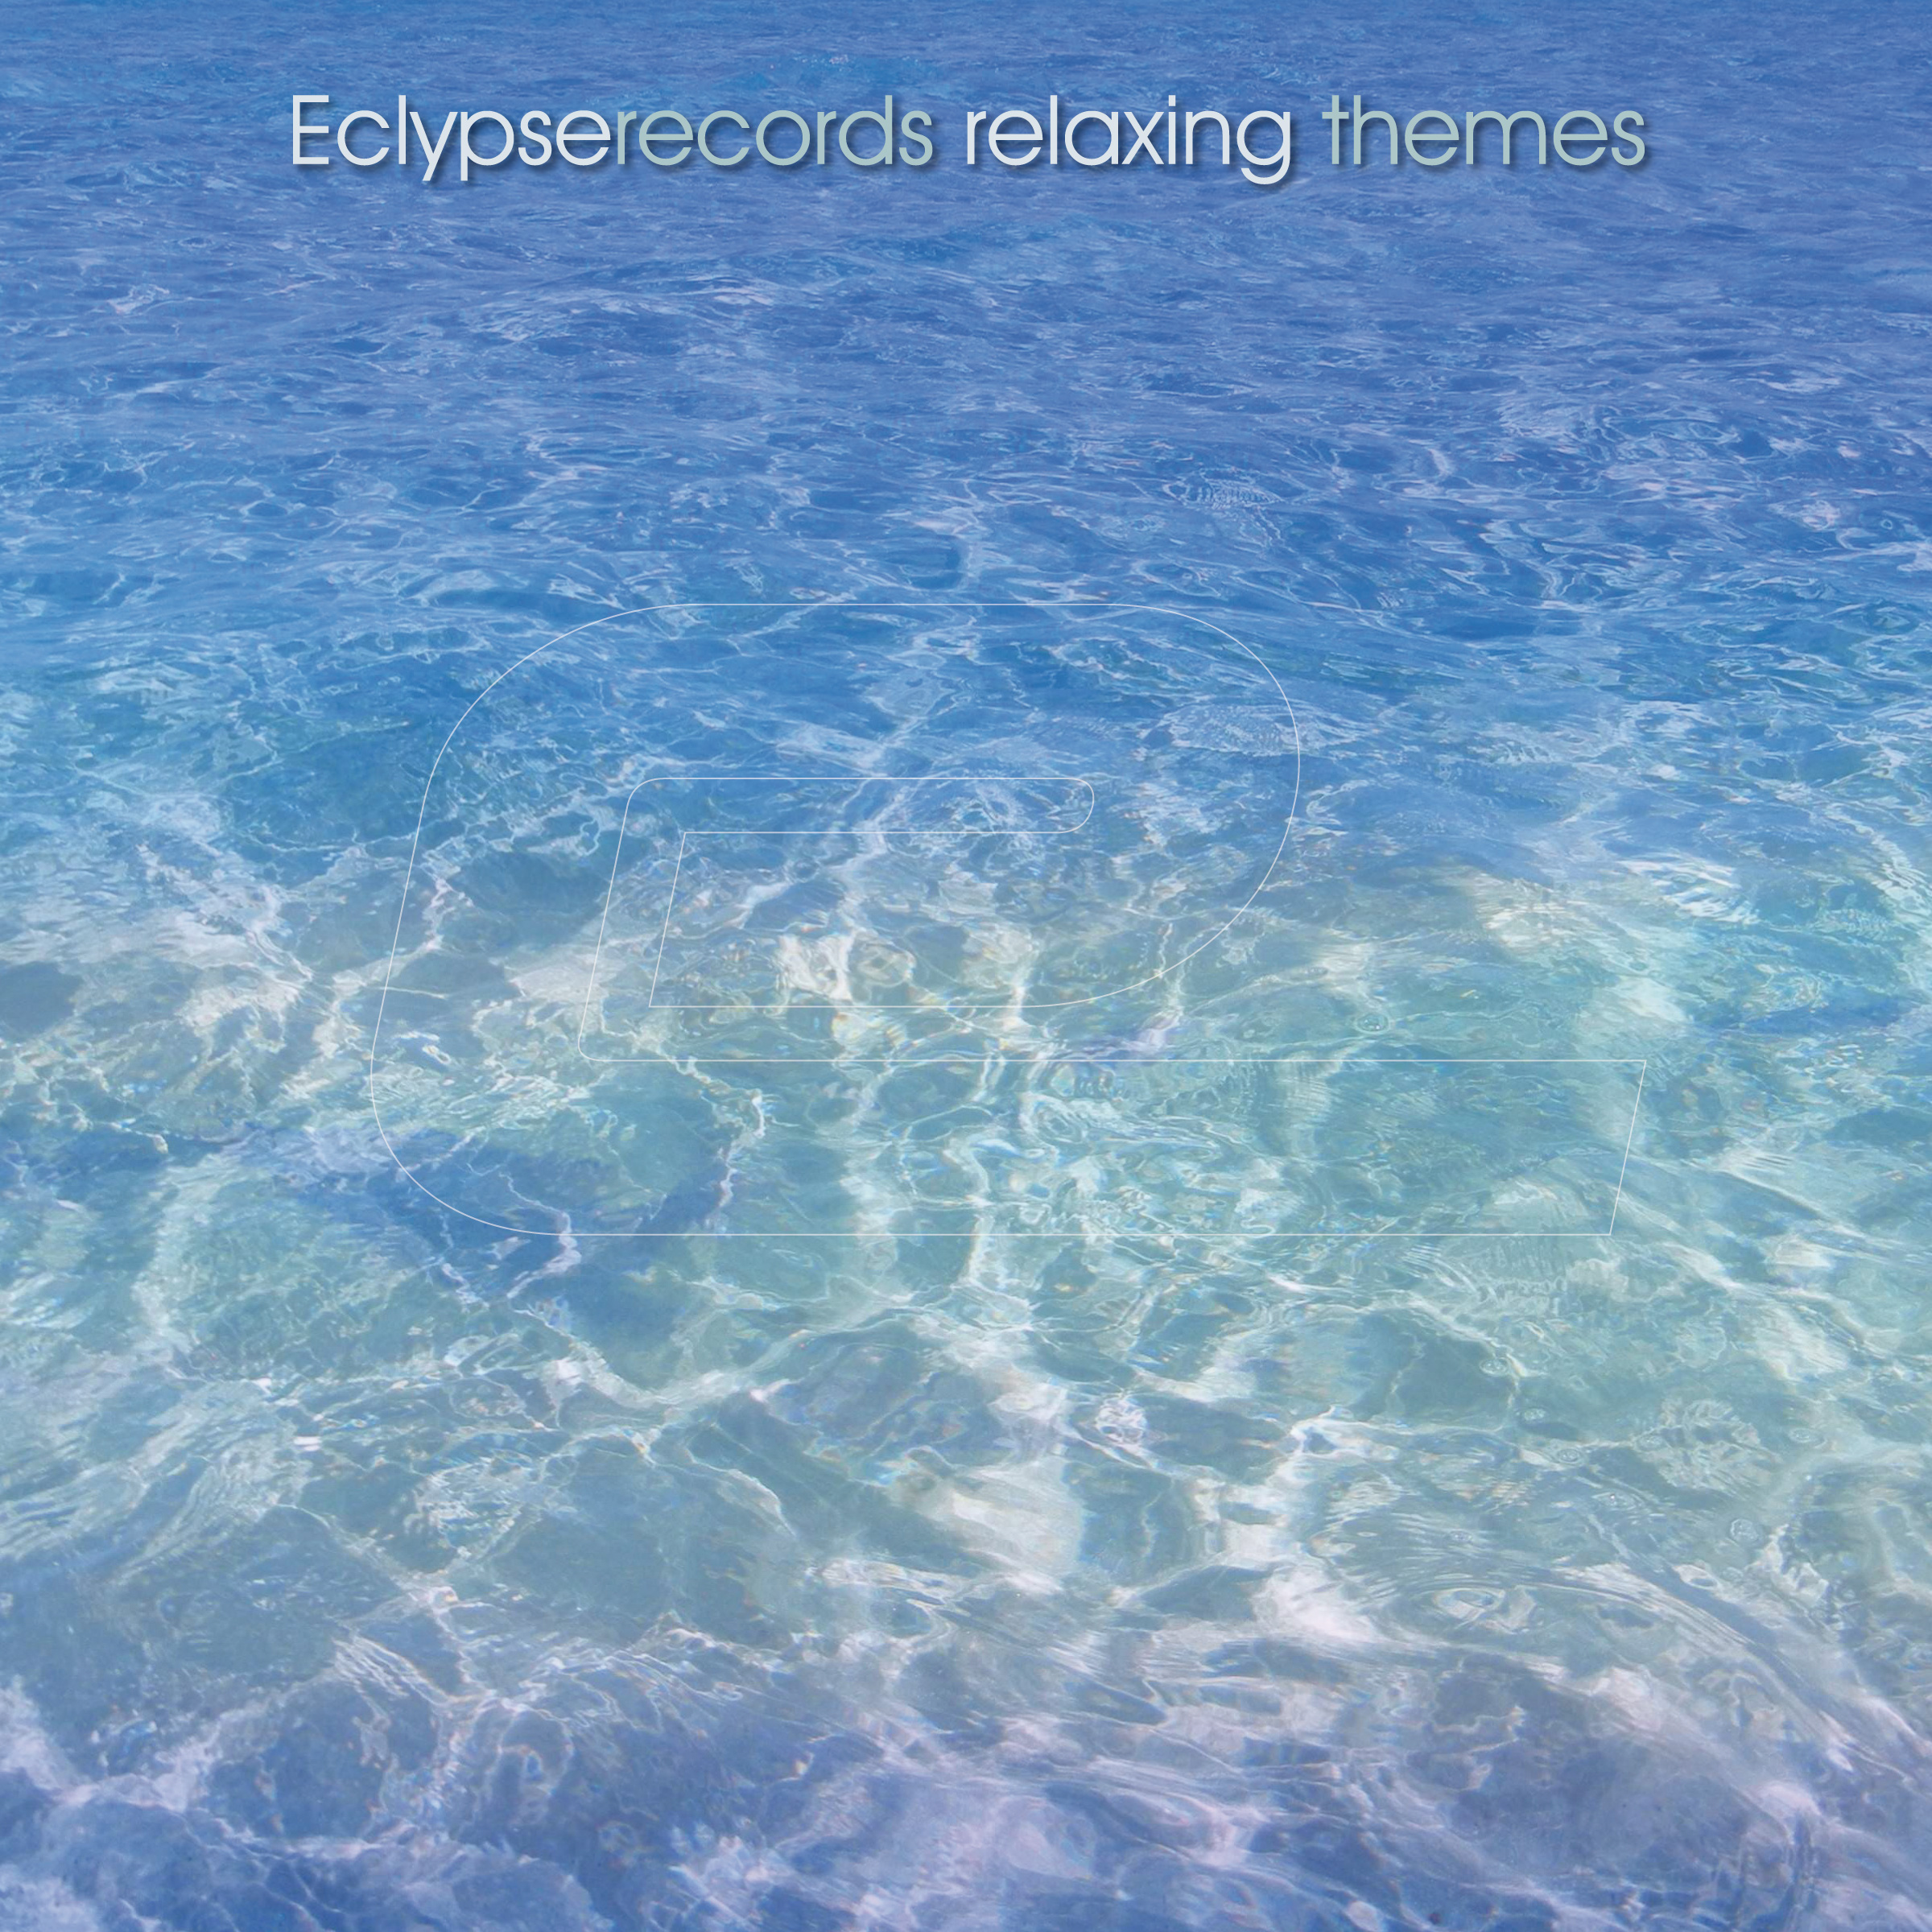 Eclypserecords relaxing themes